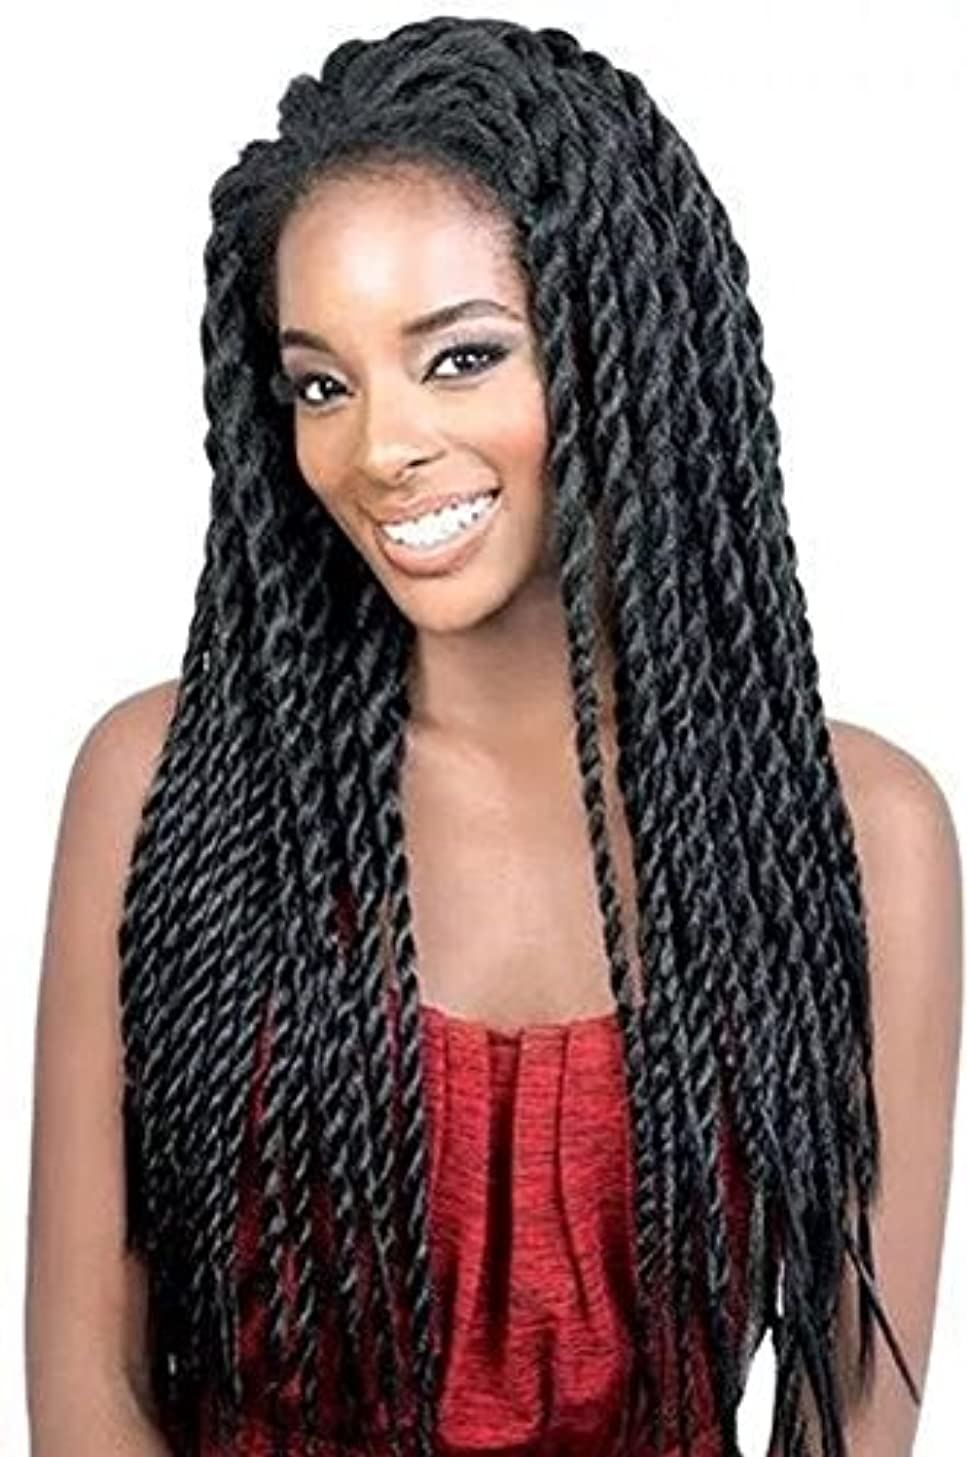 Synthetic Braided Lace Front Wigs African American Twist Braids Wigs for Black Women Natural Color (22 Inch)